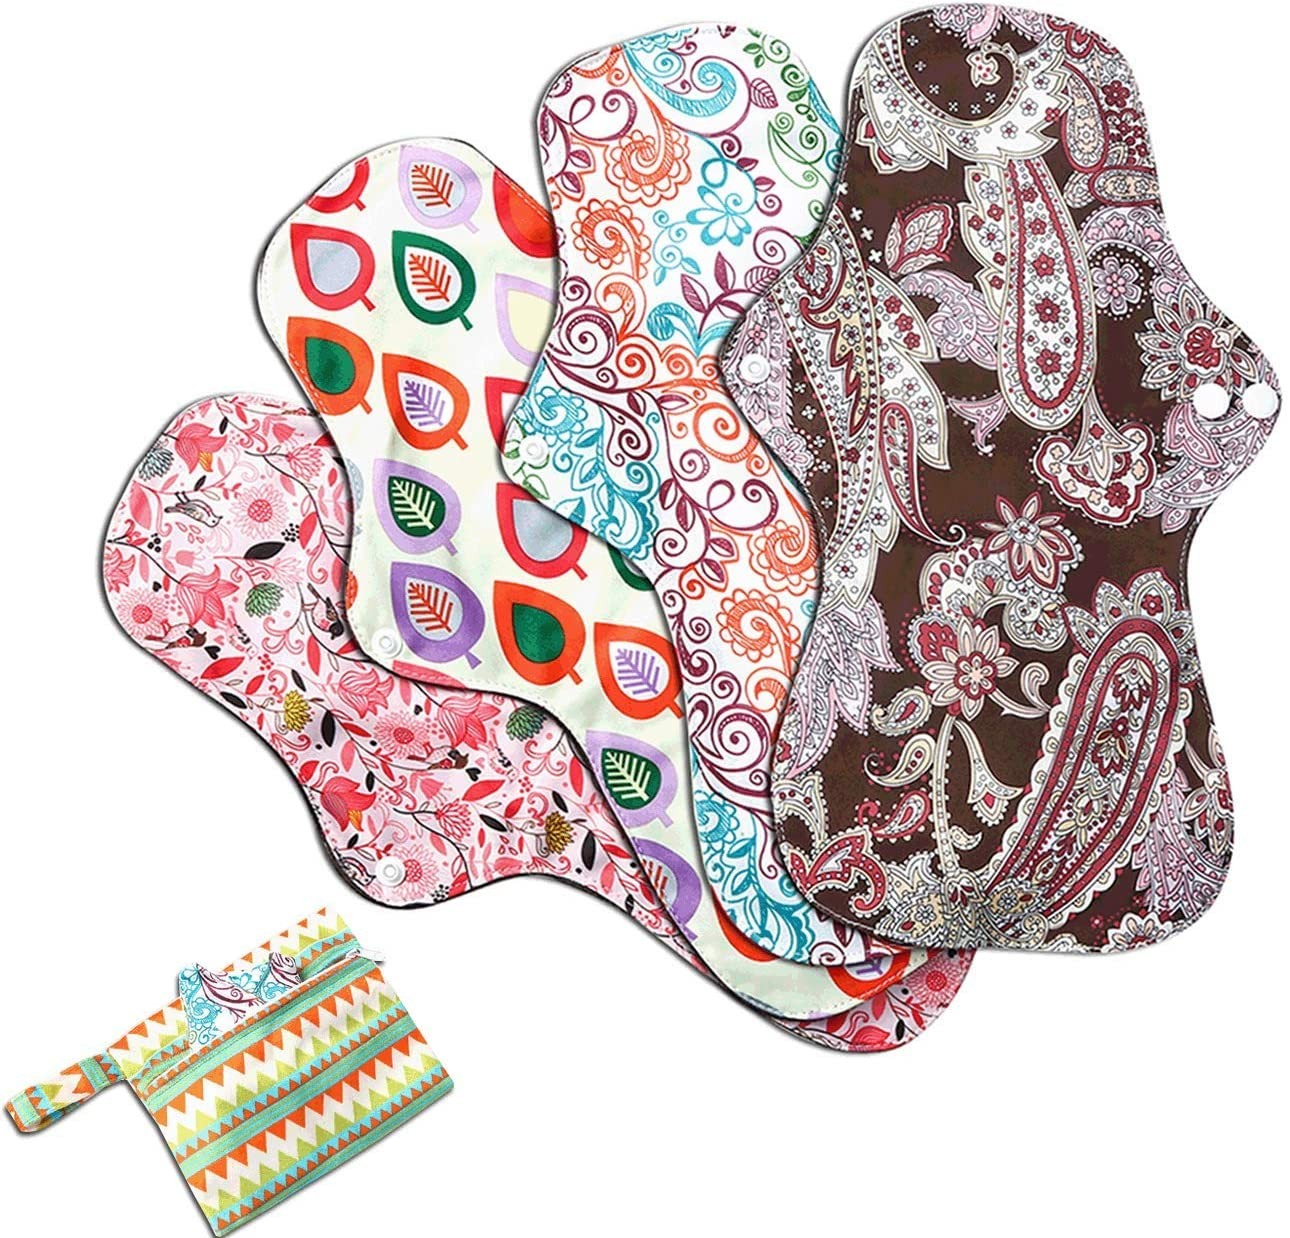 4 PCs Cloth Sanitary Pads Reusable X Large Cloth Menstrual Pads for Heavy Flow Night Use + Wet Bag Manufacturers, 4 PCs Cloth Sanitary Pads Reusable X Large Cloth Menstrual Pads for Heavy Flow Night Use + Wet Bag Factory, Supply 4 PCs Cloth Sanitary Pads Reusable X Large Cloth Menstrual Pads for Heavy Flow Night Use + Wet Bag